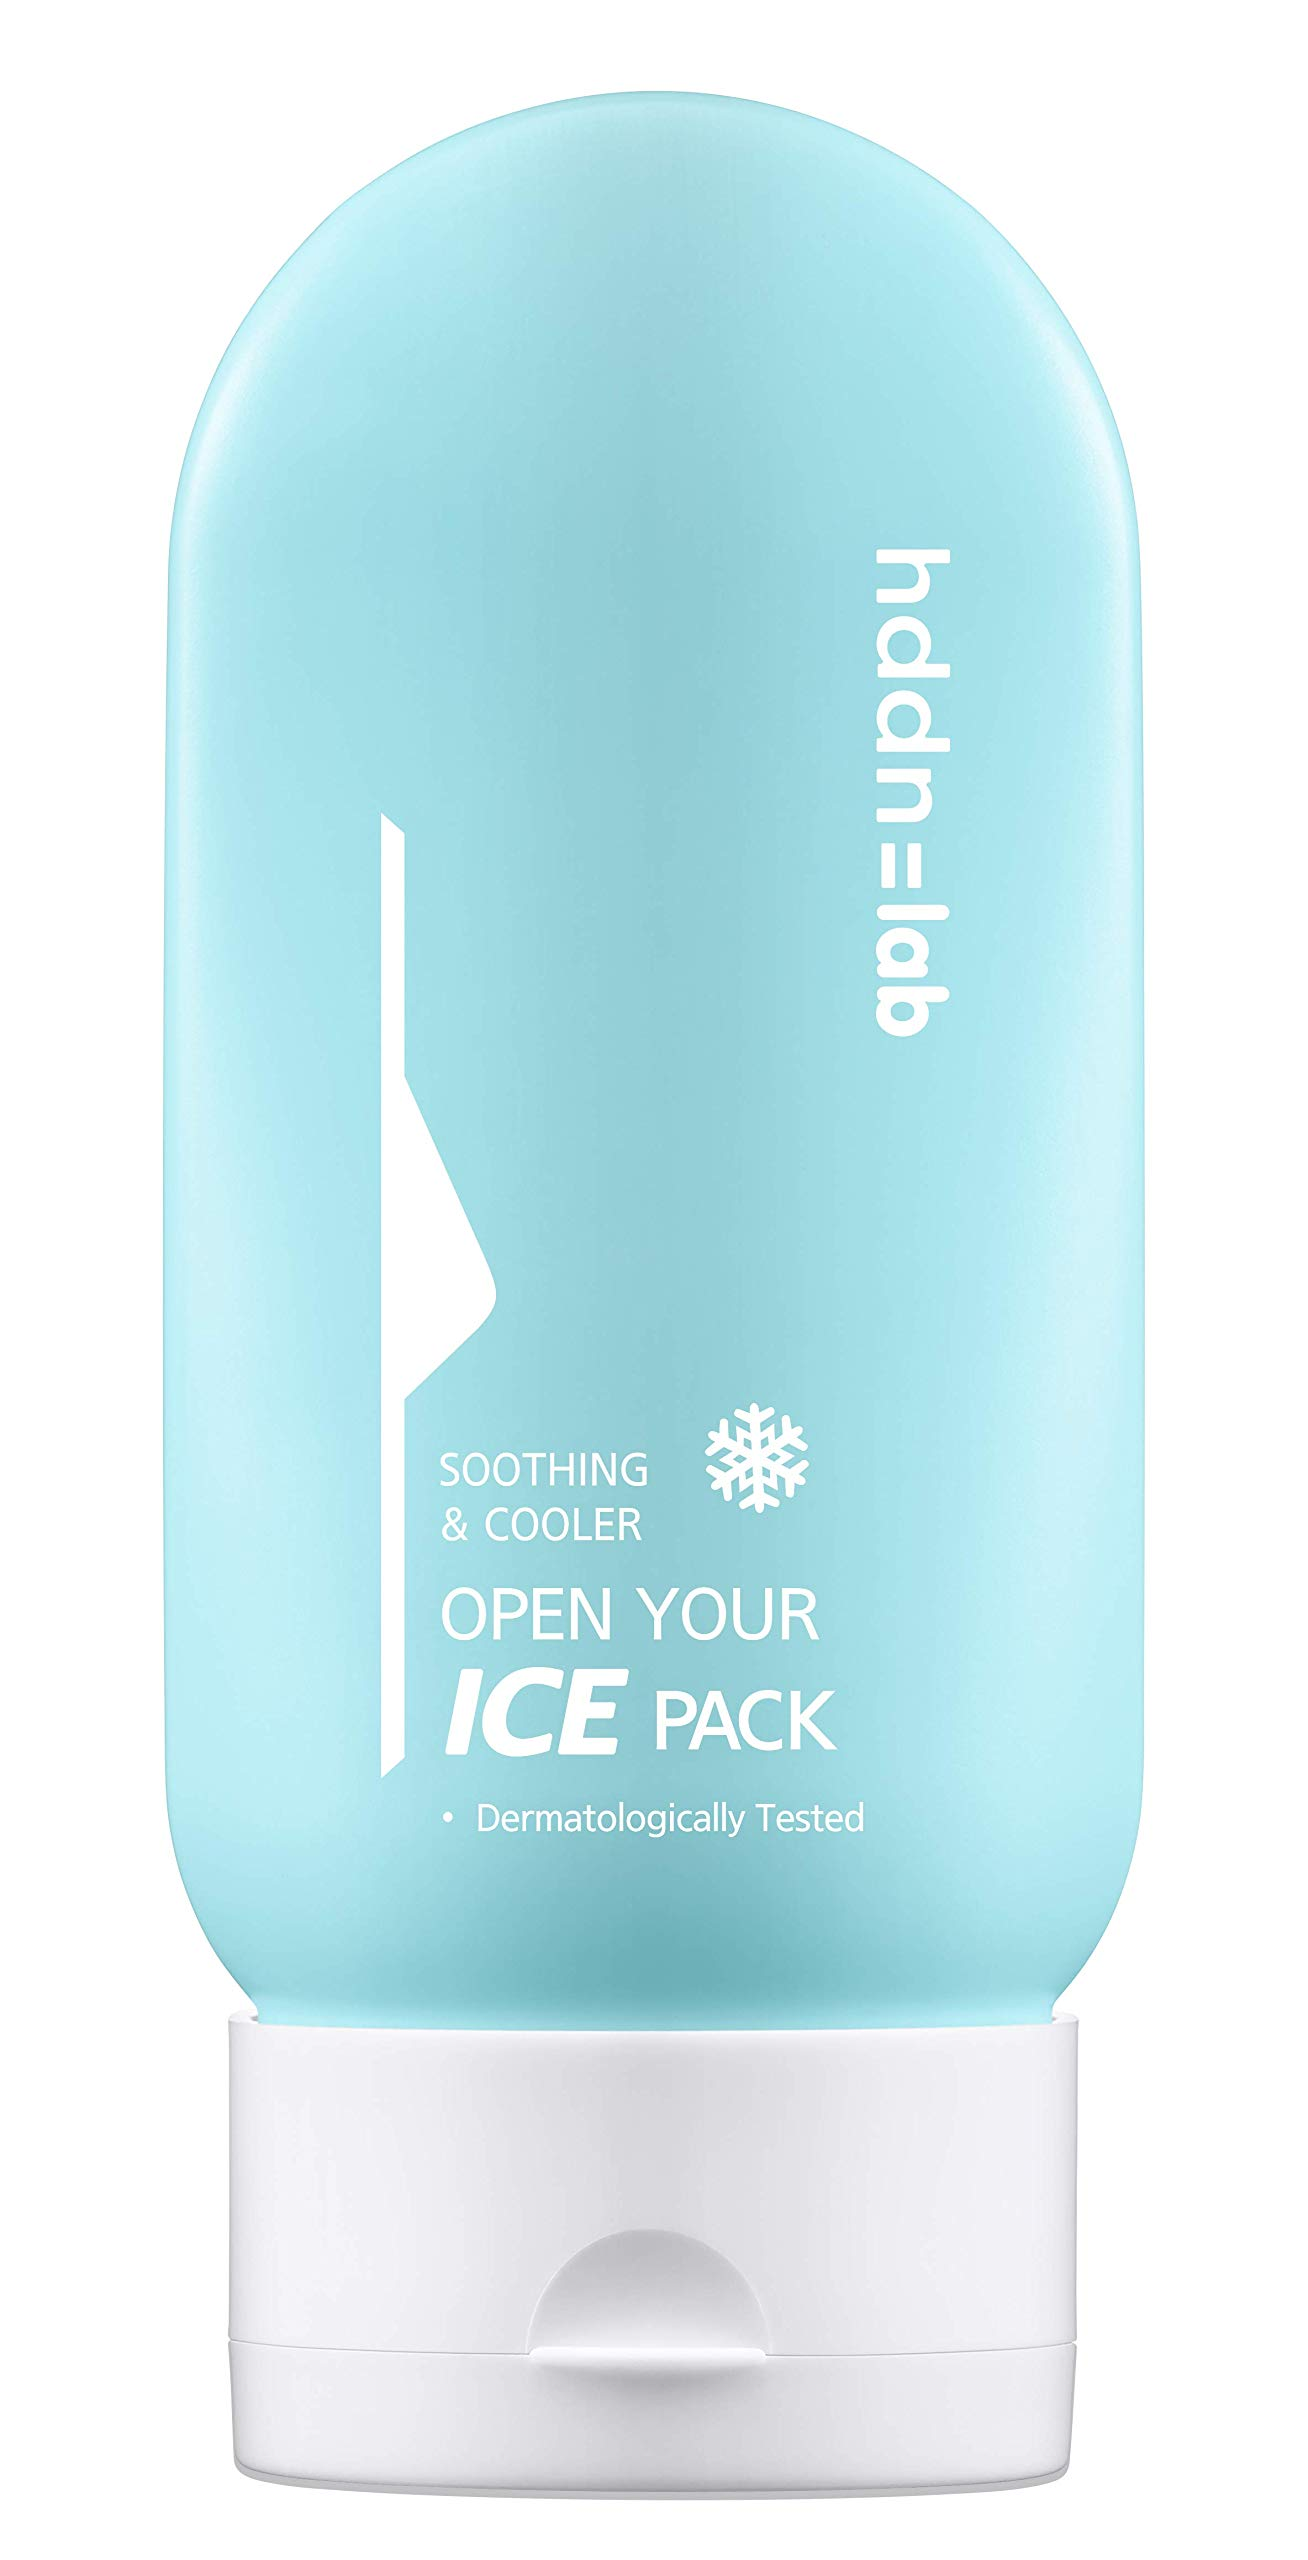 SNP Hddn Lab - Open Your Ice Pack - Soothing & Calming Effects for All Skin Types - 100ml - Best Gift Idea for Mom, Girlfriend, Wife, Her, Women